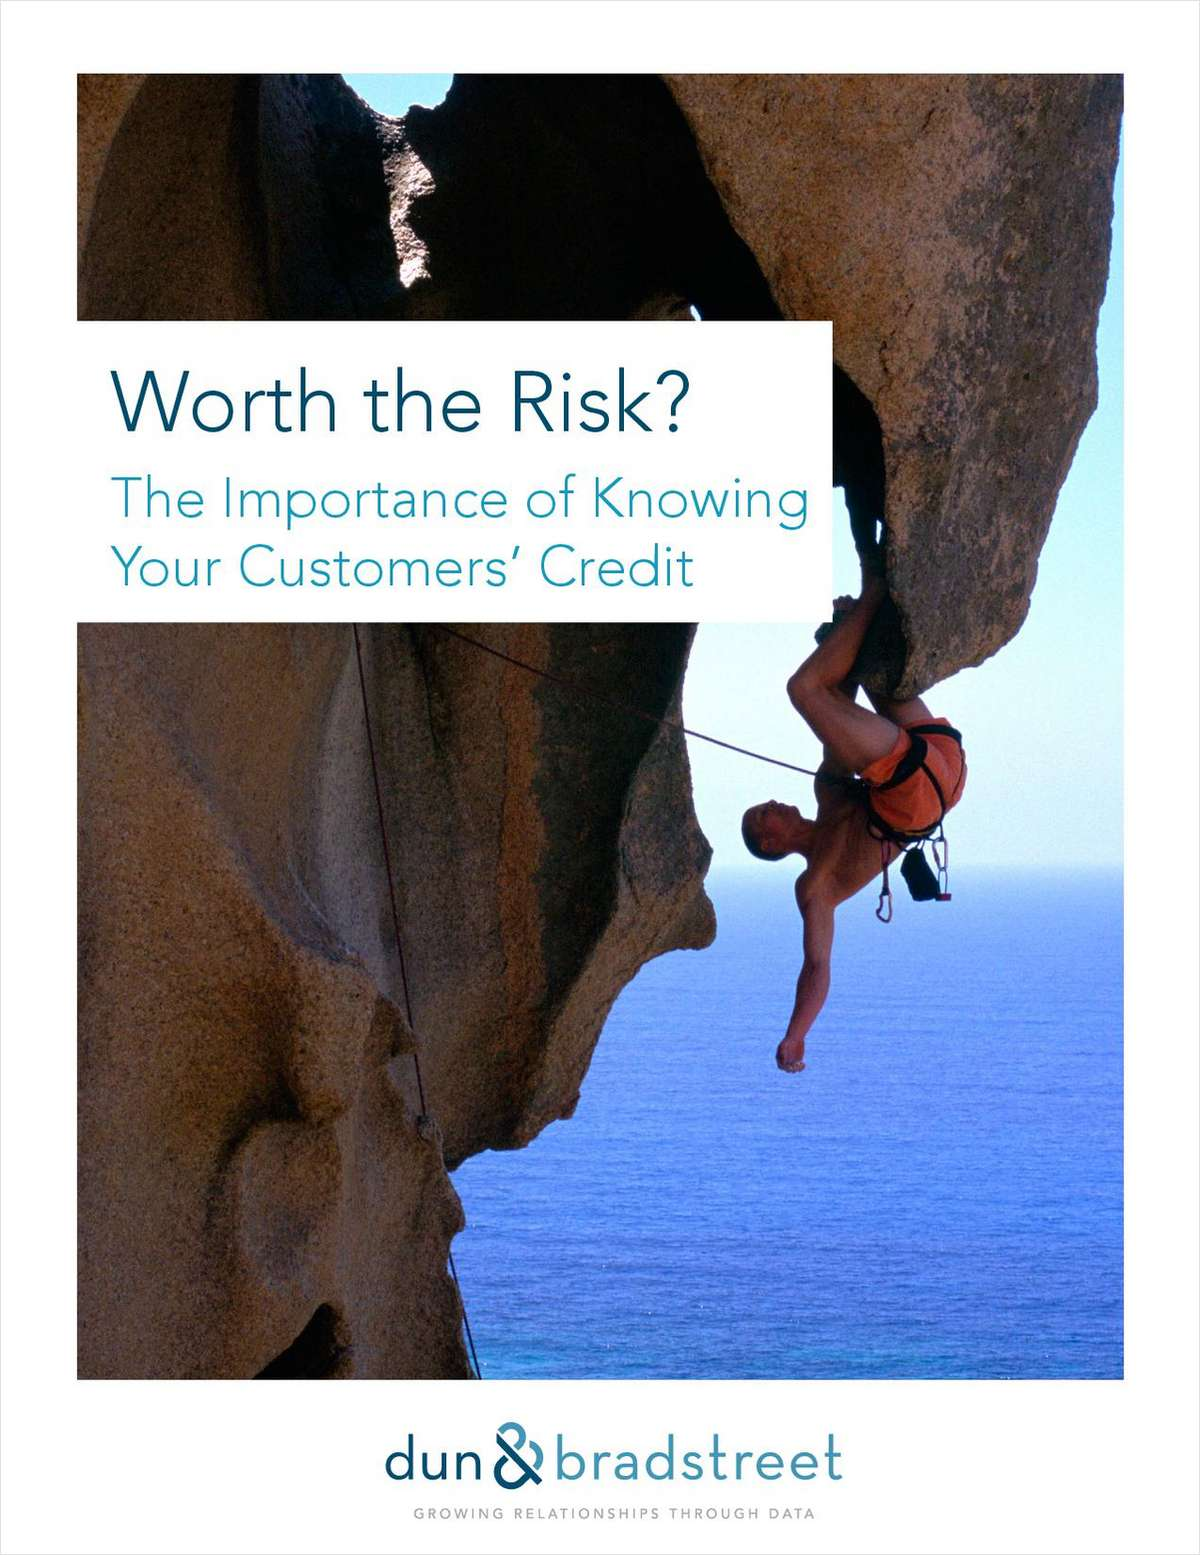 Worth the Risk?  Tips for Finance on Knowing Your Customers